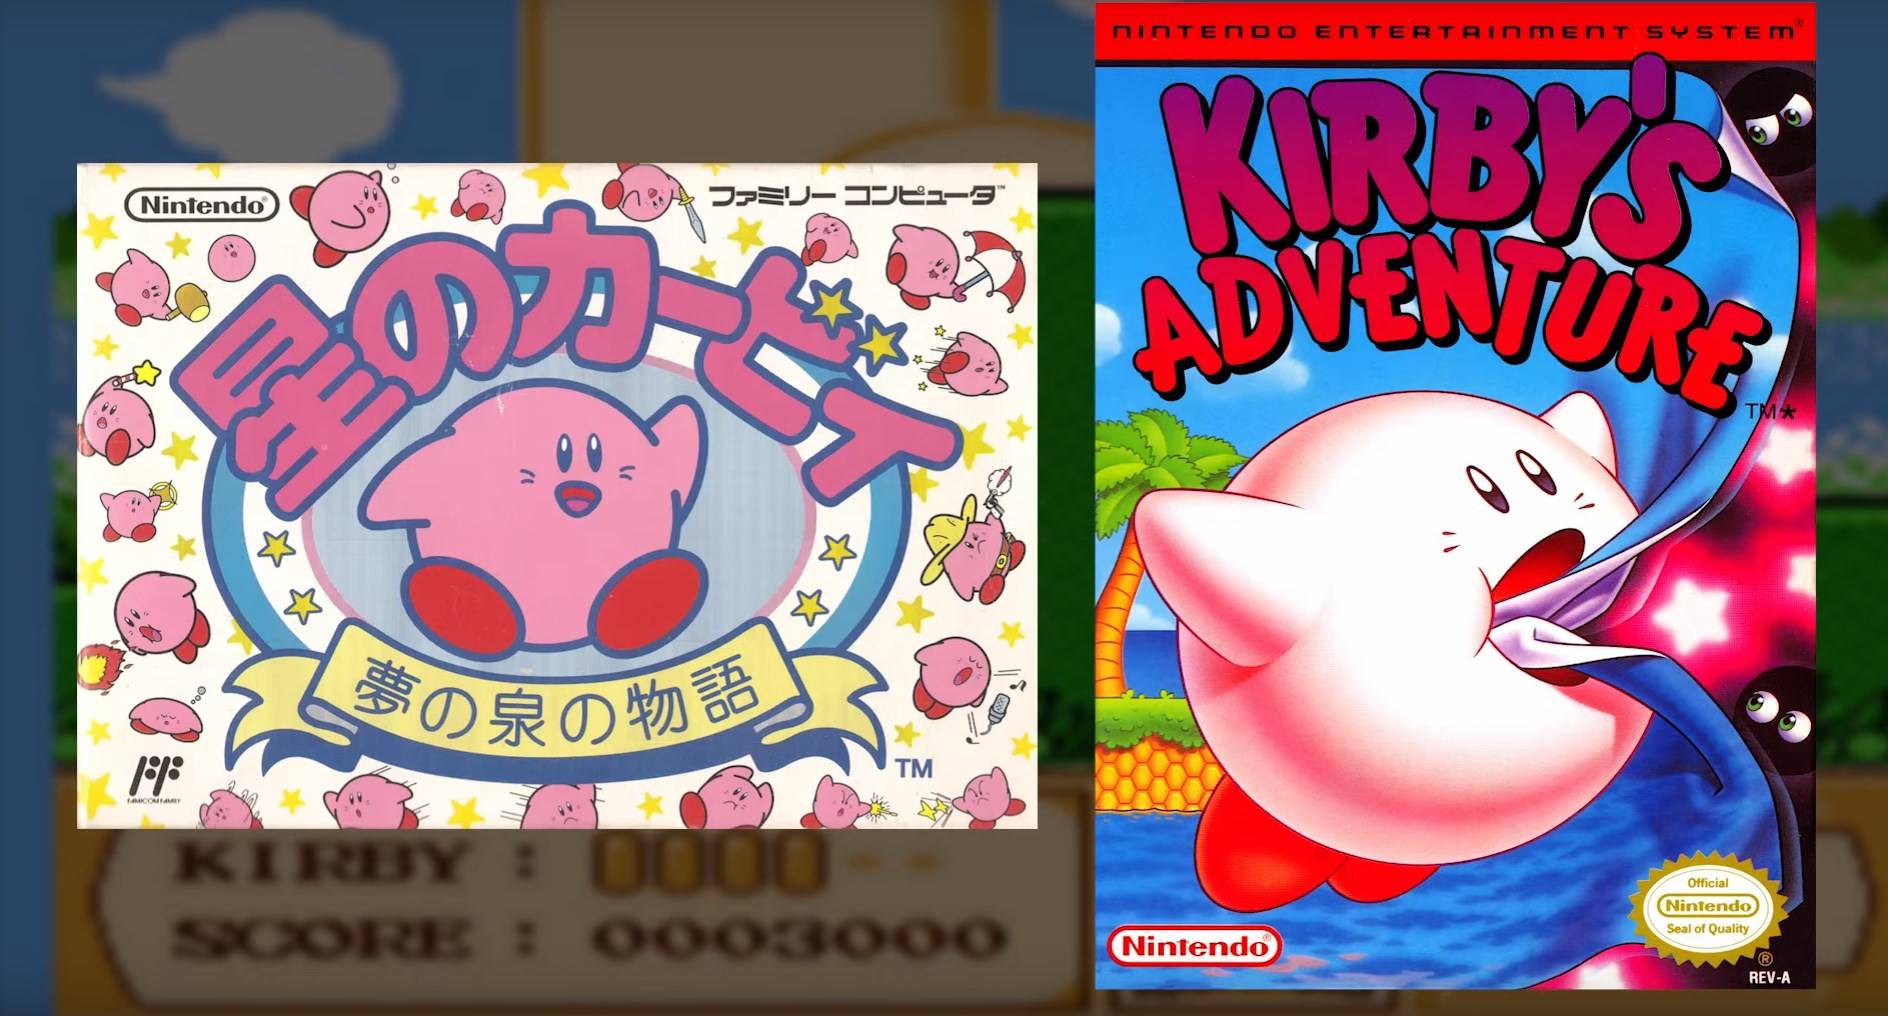 Kirby and Tinkle Popo in Nintendo History